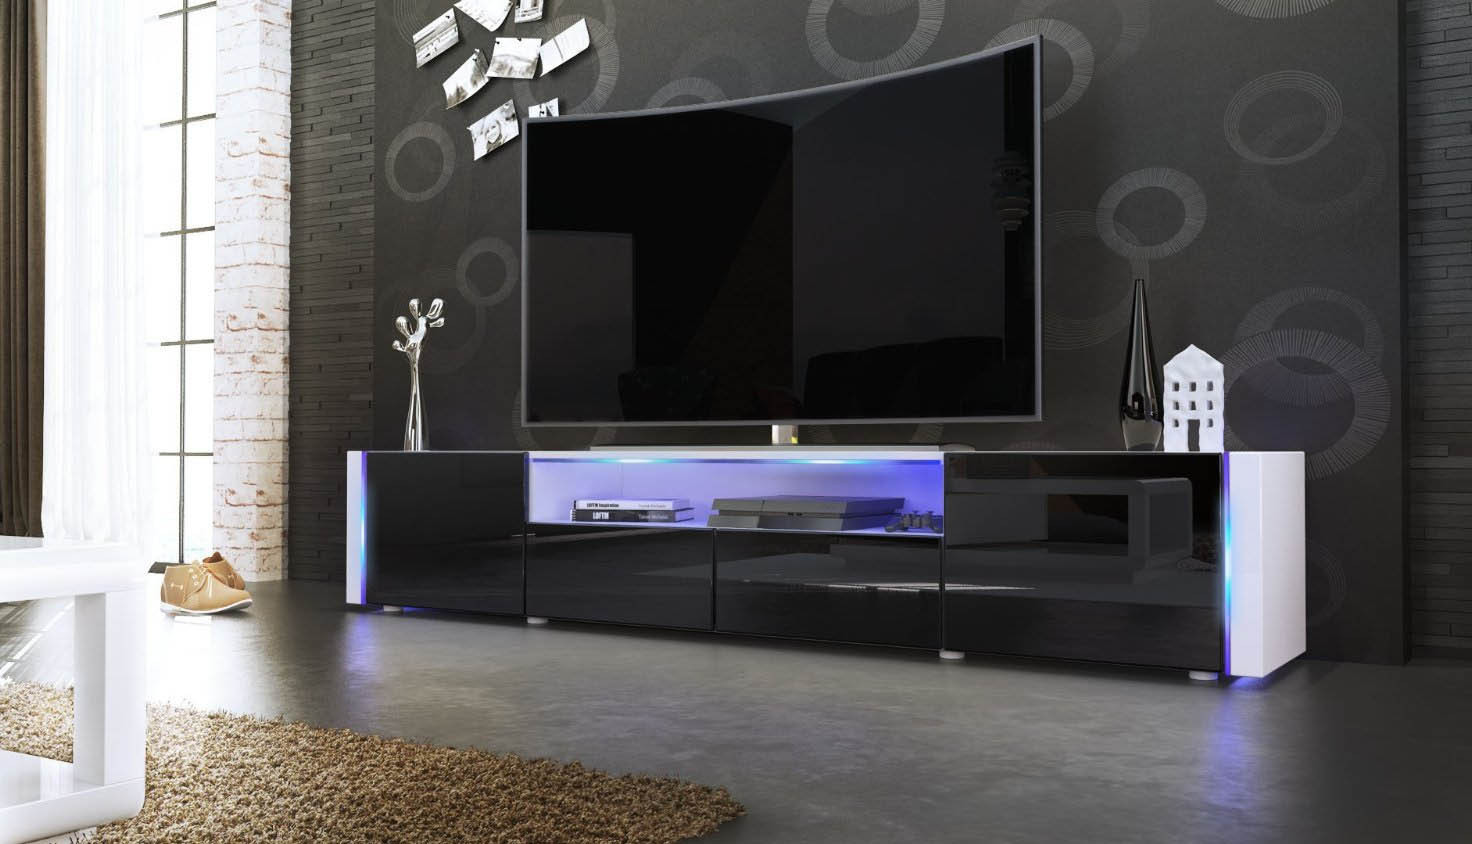 Mobile Tv Moderno Led : Soggiorno tv moderno mobile tv sospeso idee di design decorativo